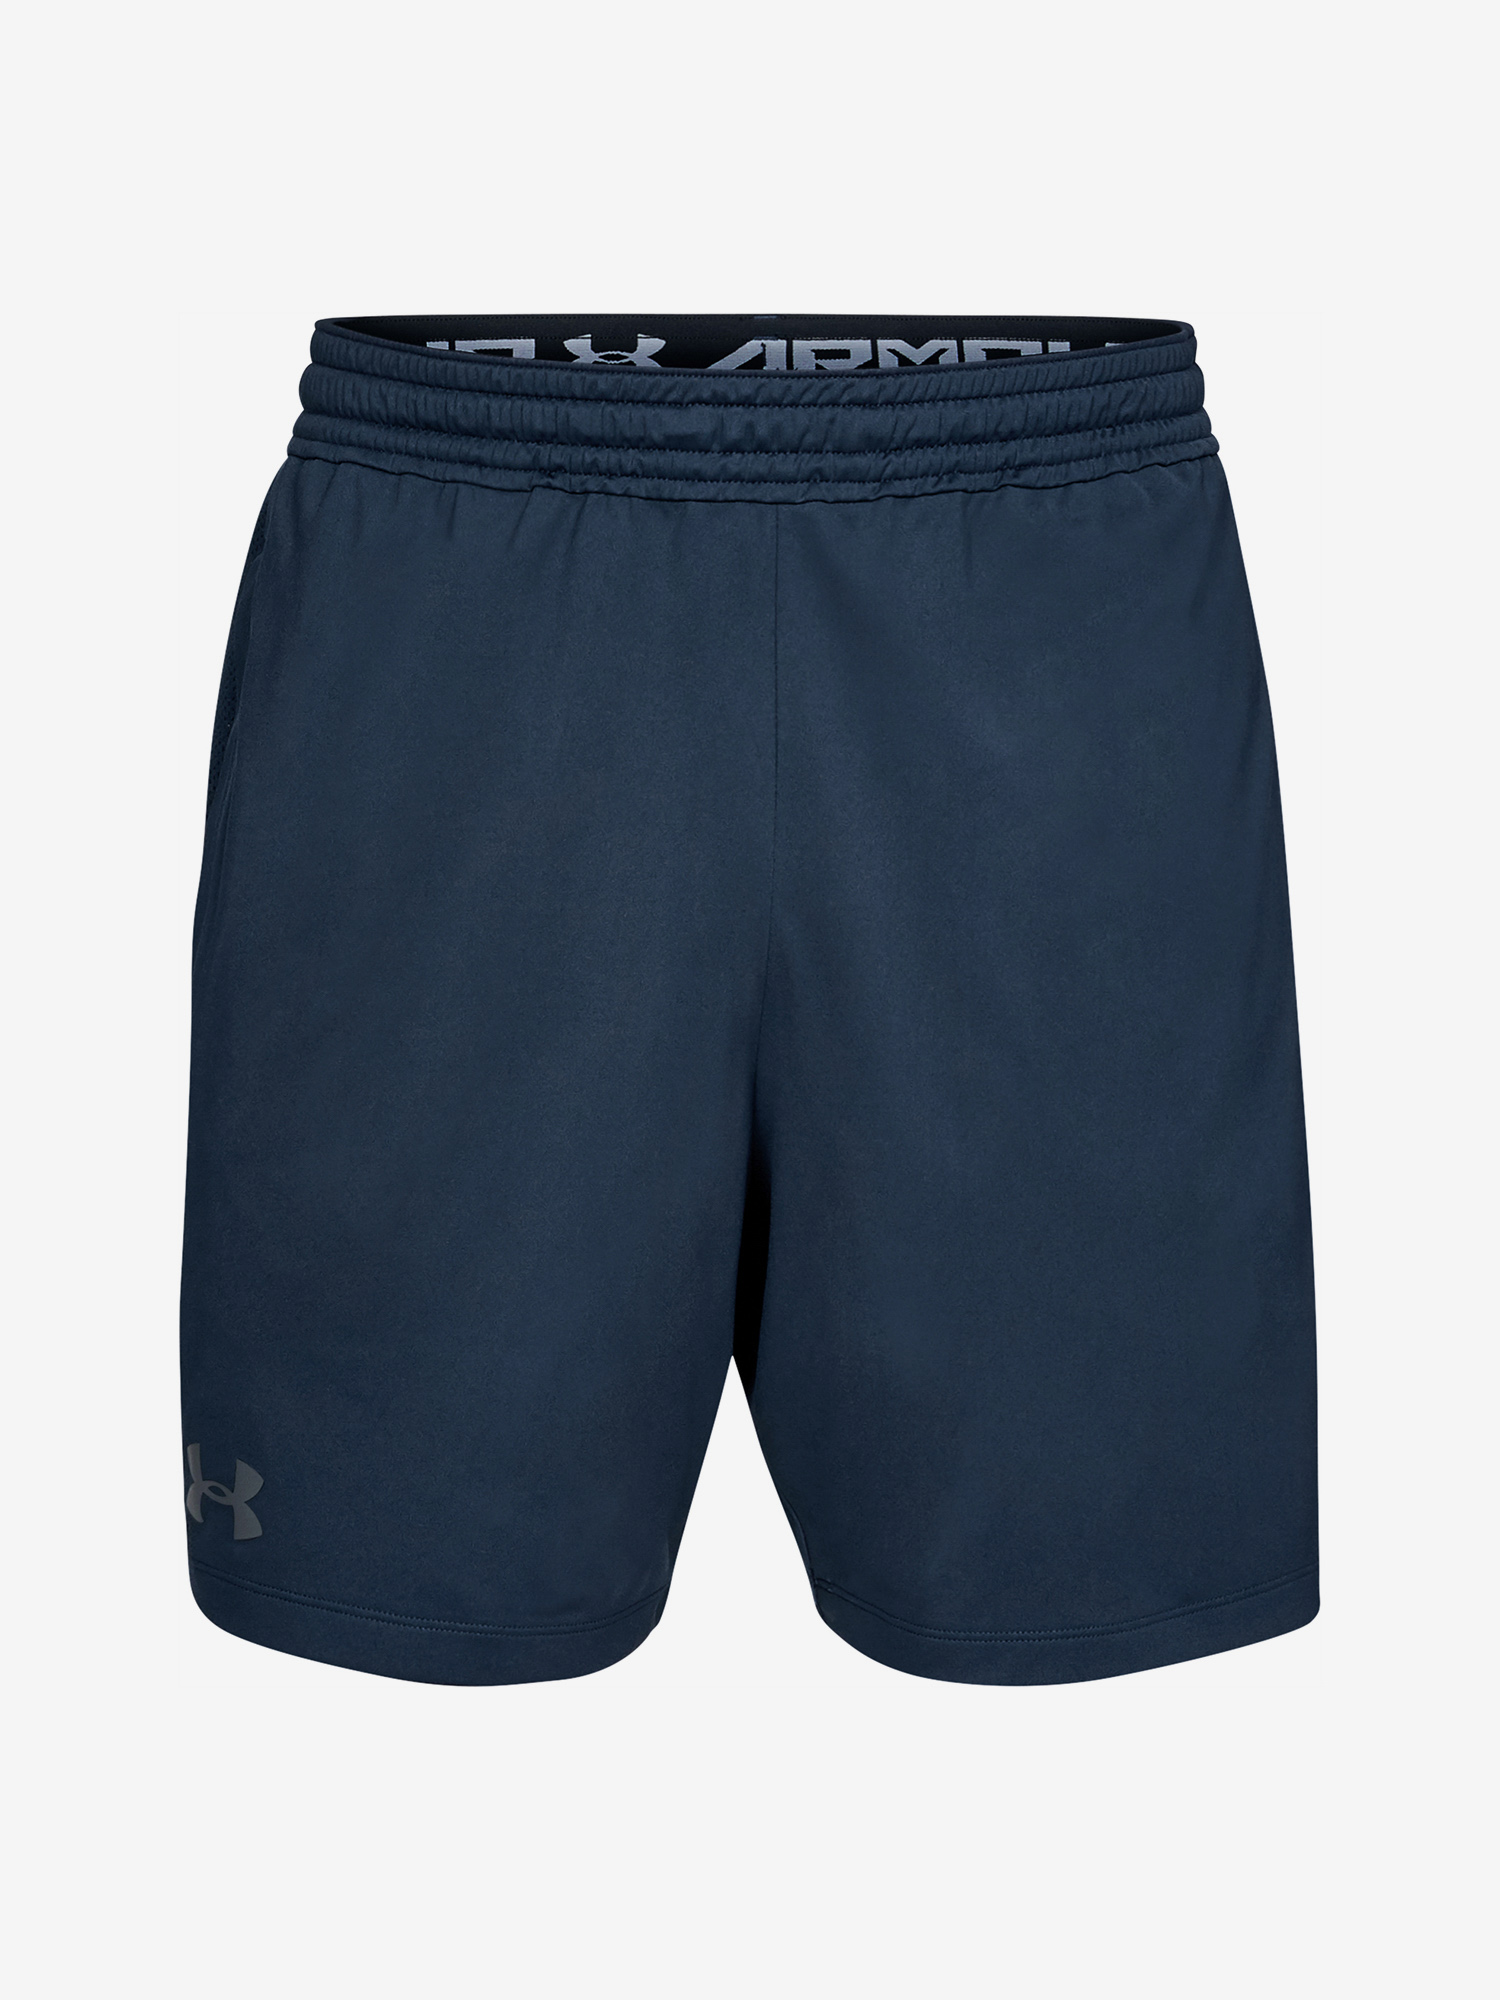 Kraťasy Under Armour Raid 2.0 Short 7In. (3)